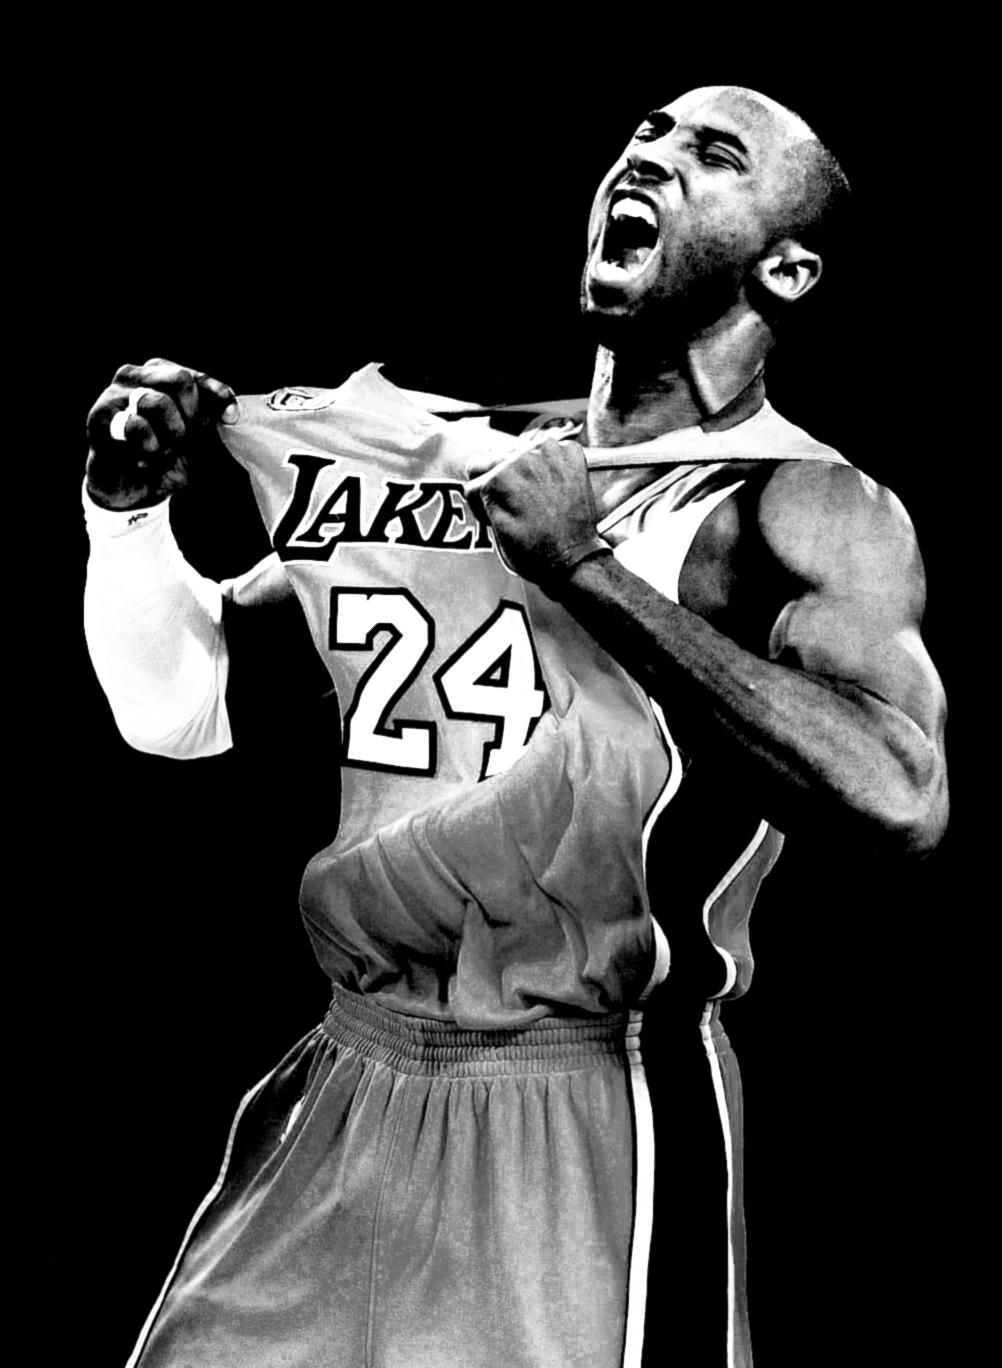 The Los angeles Lakers' Kobe Bryant exhalts after a three point shot in a game that he finished with 49 points and a 2 games to none lead over the Denver Nuggets in a NBA Western conference play-off game.